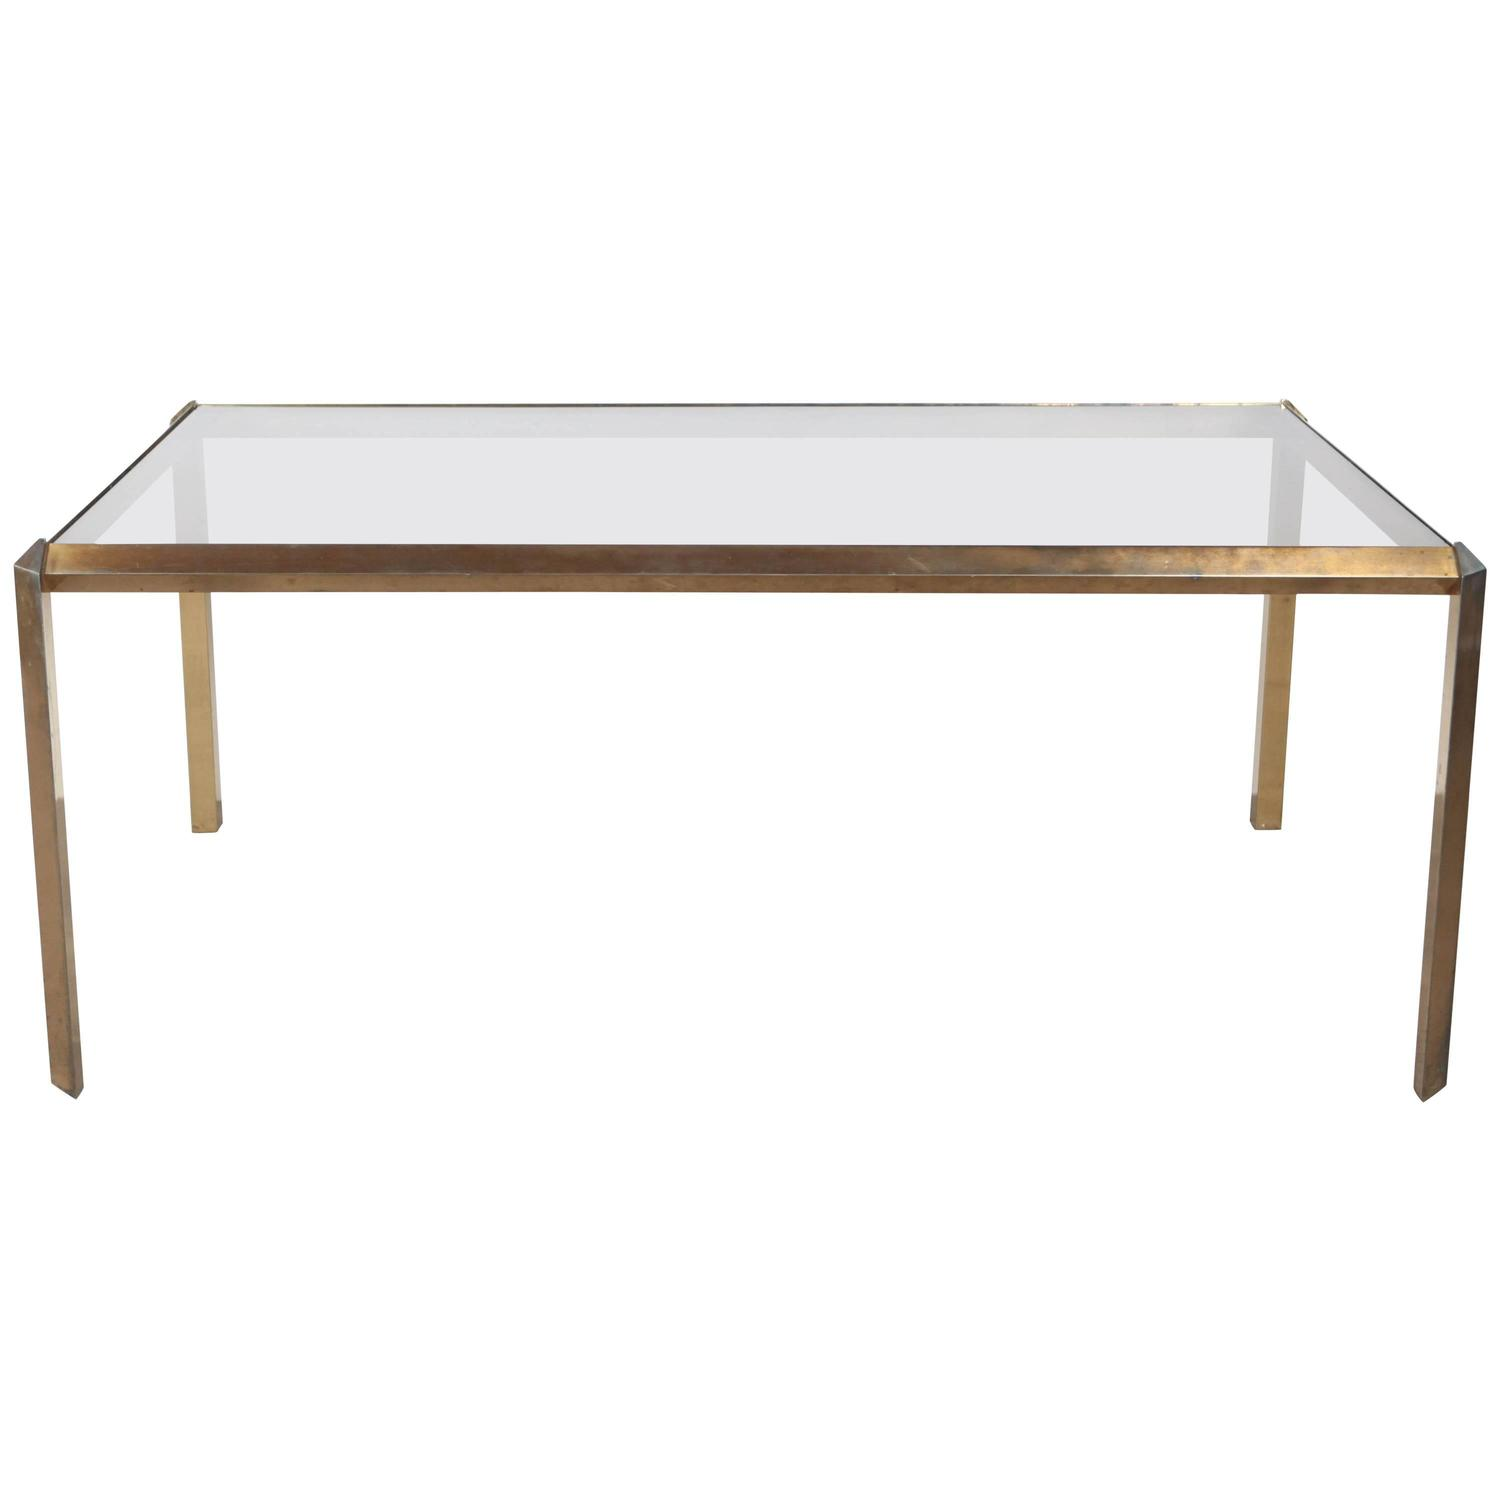 Brass and glass mid century dining table at 1stdibs for Glass dining table